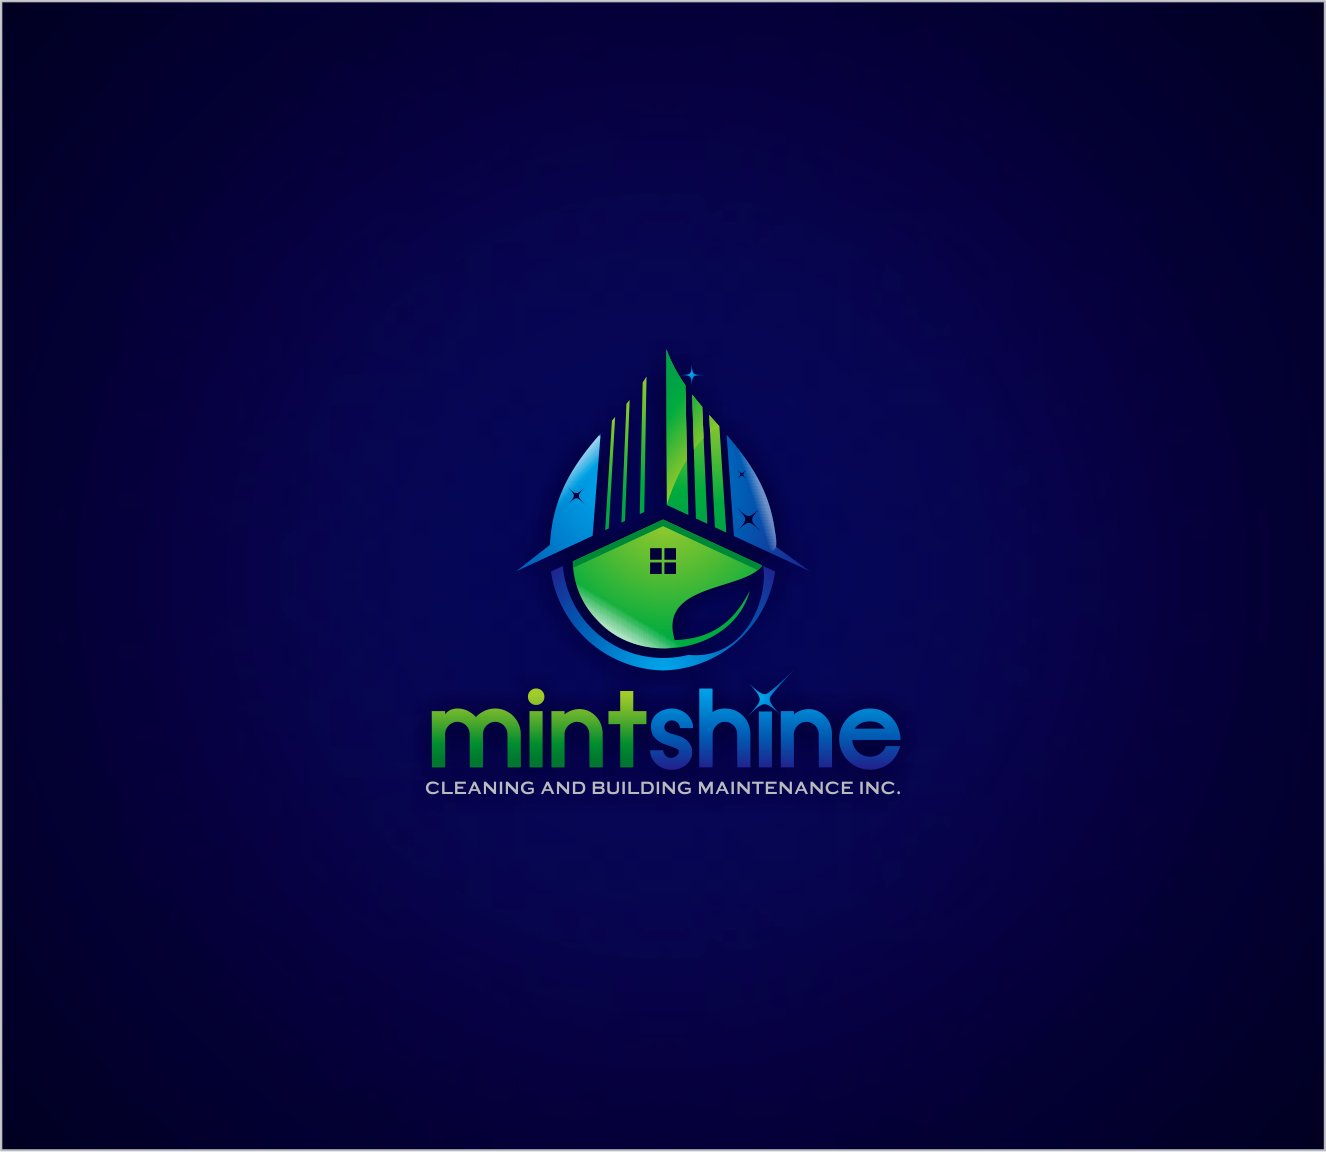 Logo Design by Armada Jamaluddin - Entry No. 47 in the Logo Design Contest New Logo Design for mintSHINE cleaning and building maintenance.